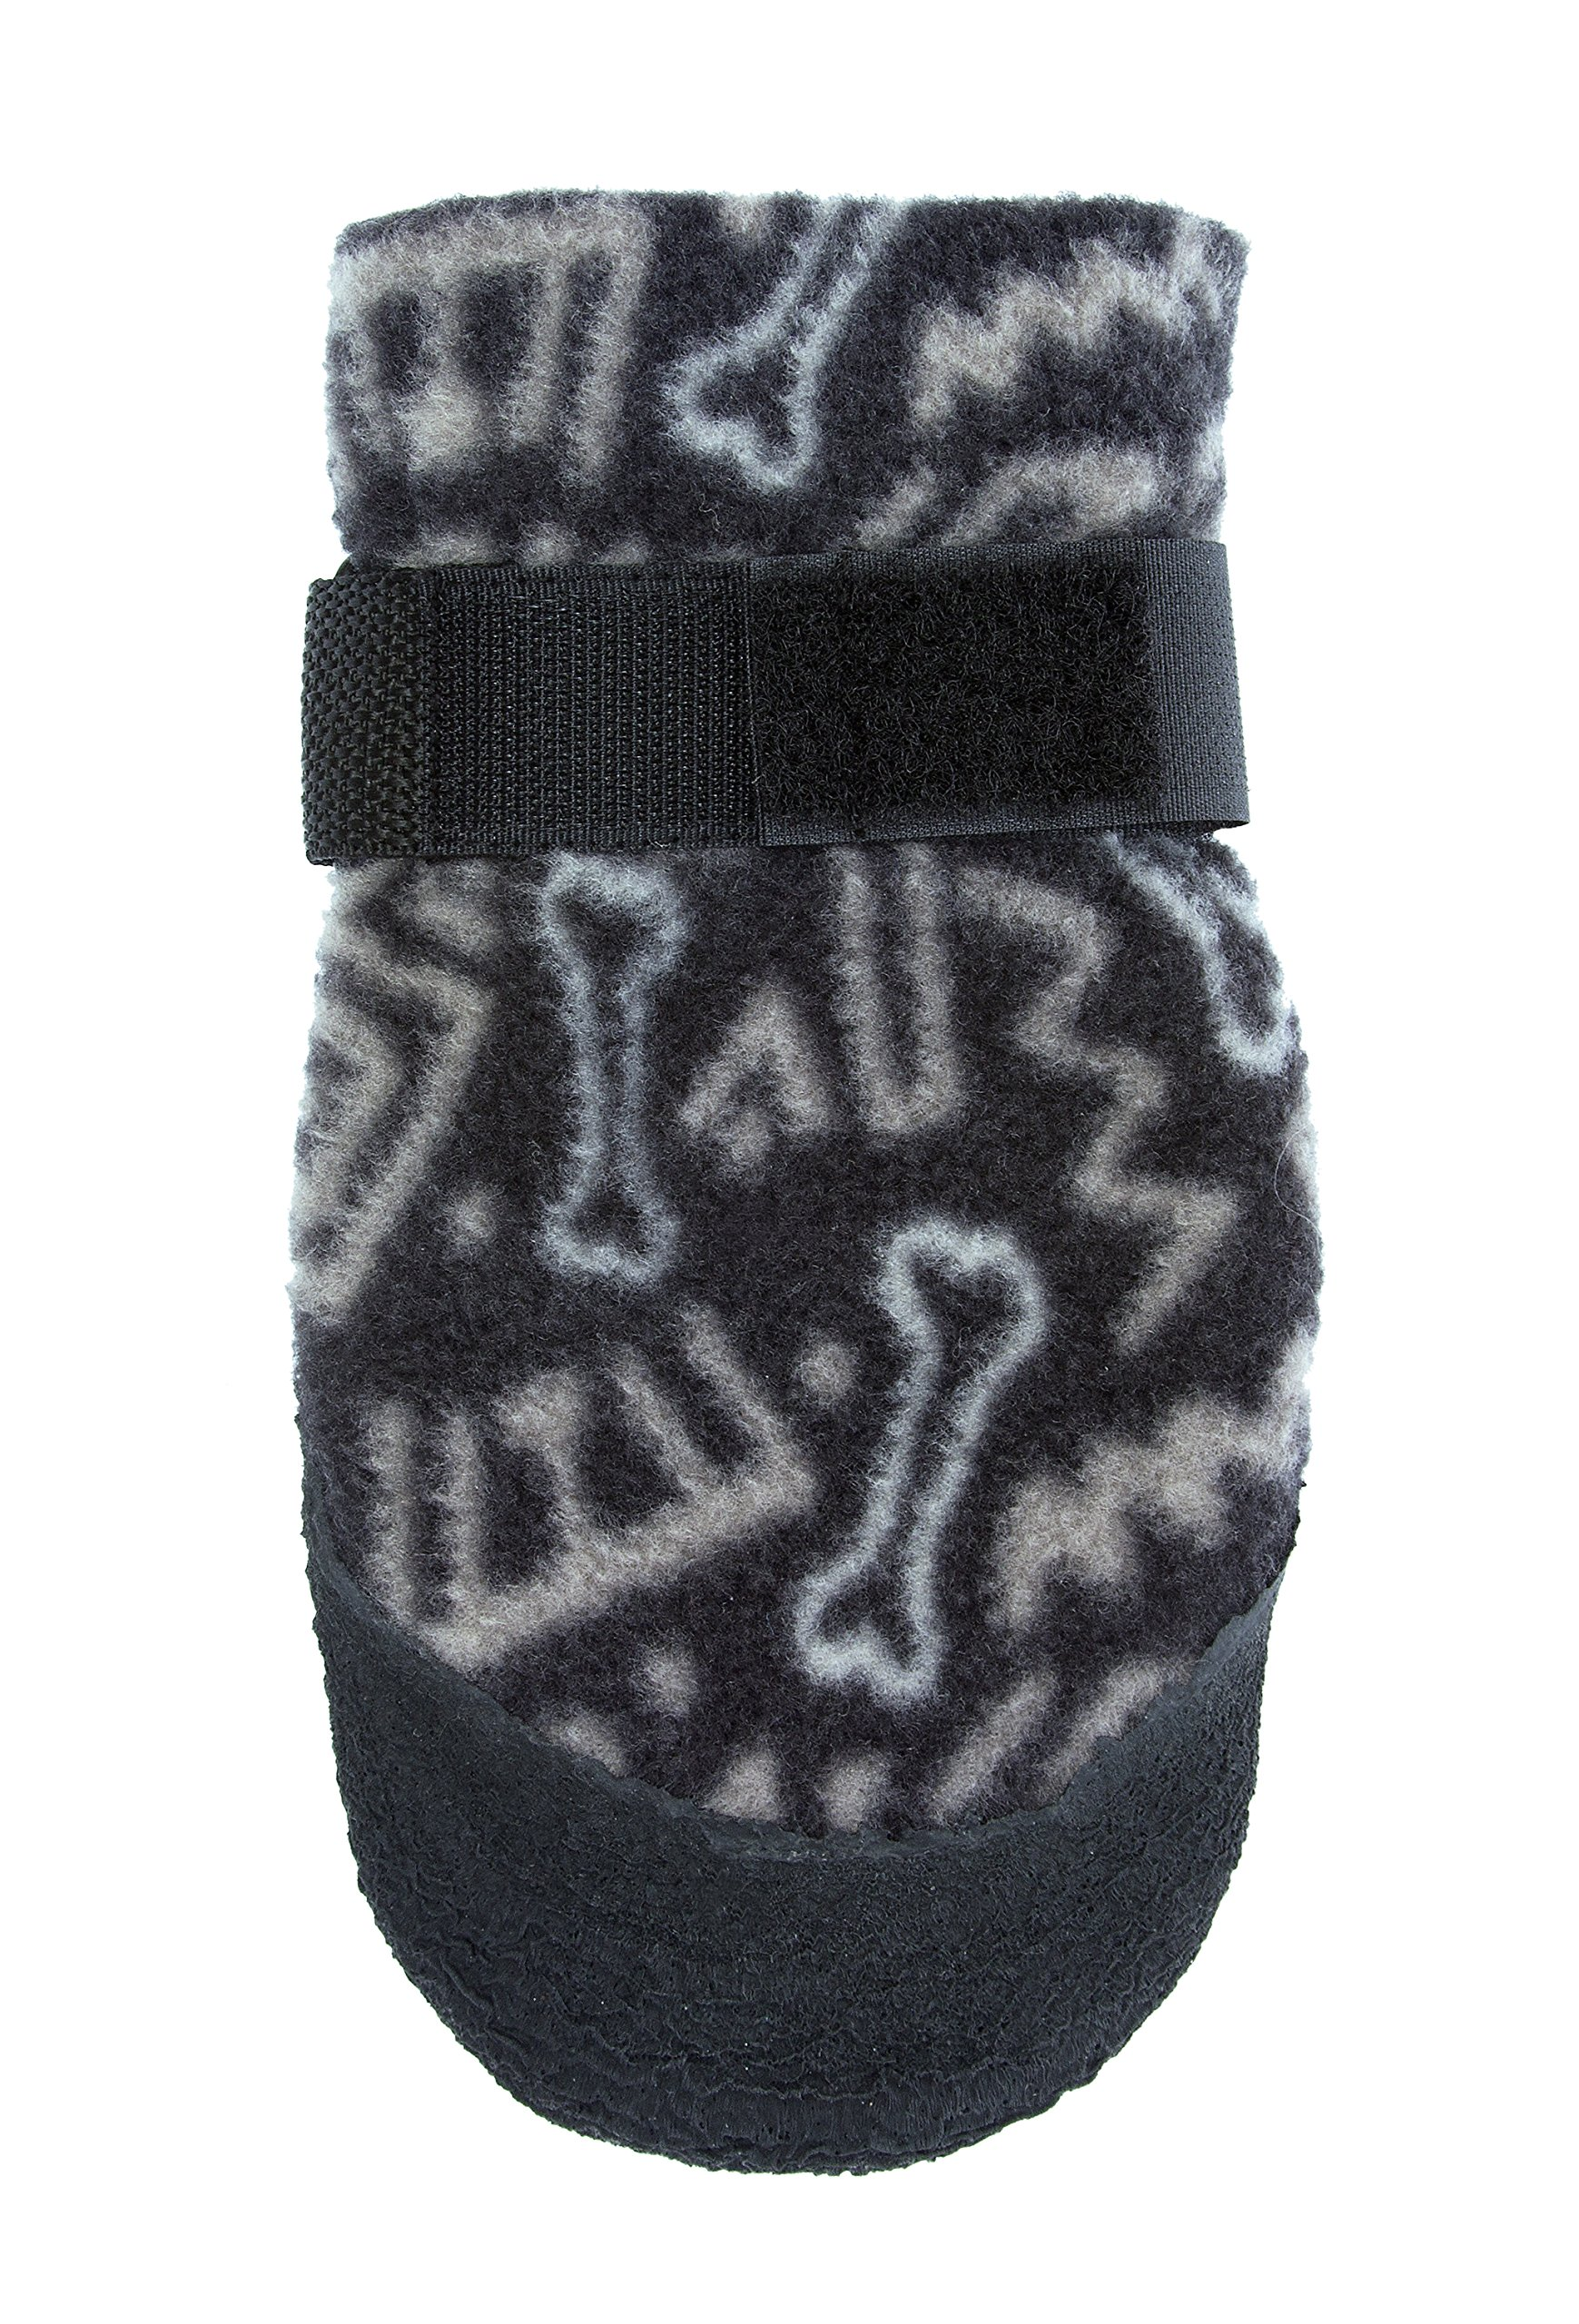 Ultra Paws, Cozy Paws Traction Dog Boots, Medium